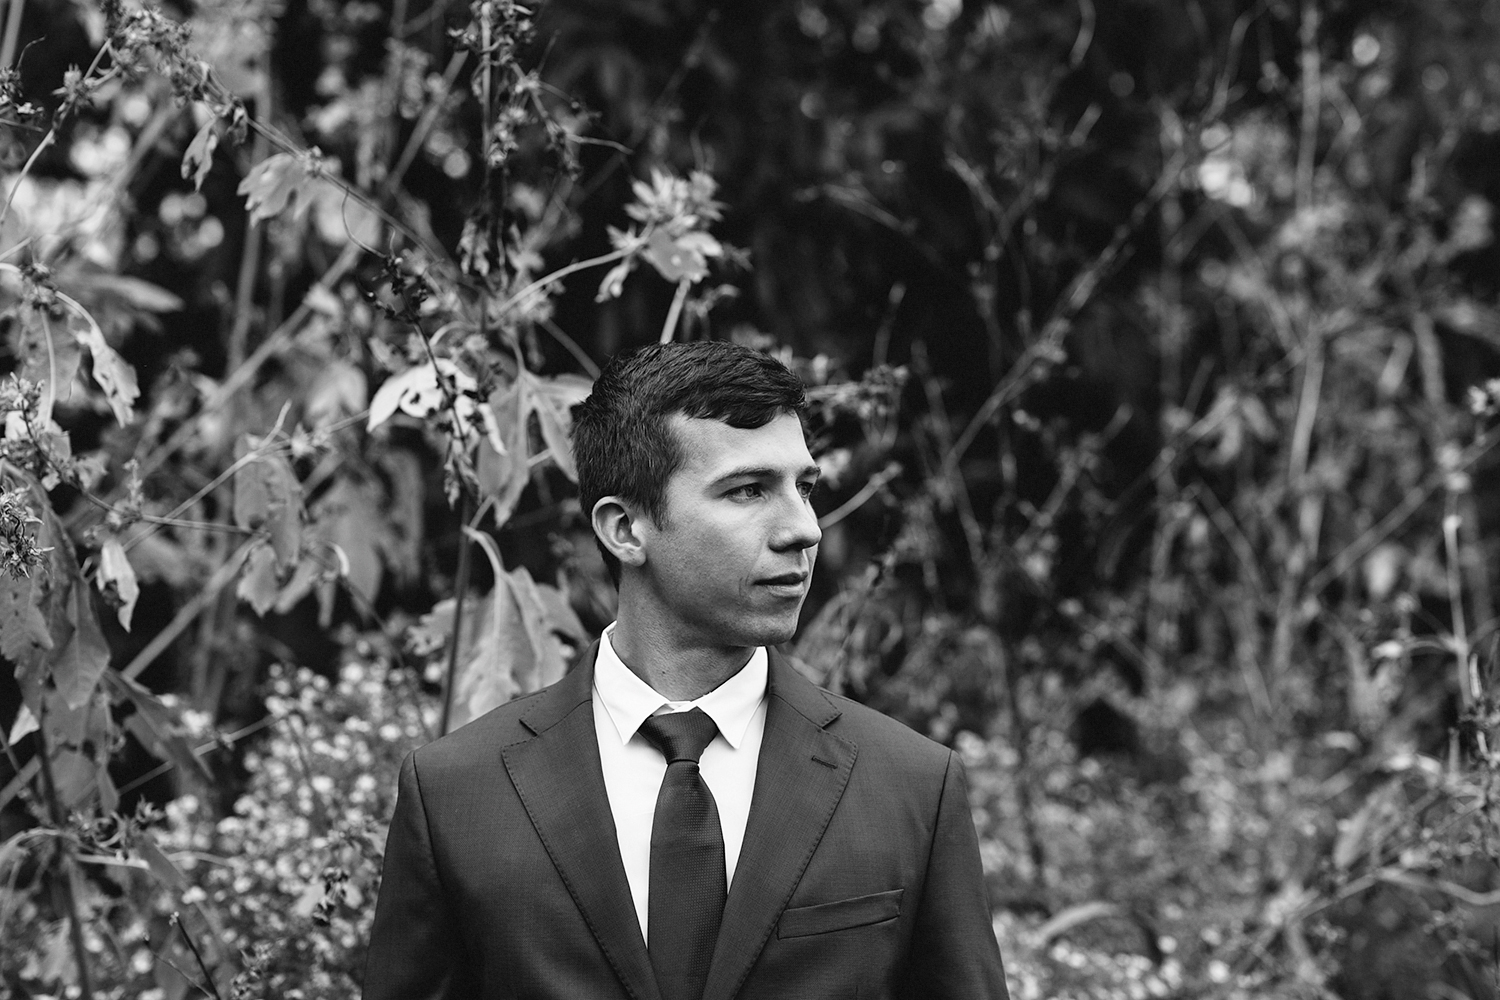 editorial-field-flowers-groom-portrait-moody-real-moments-photos-toronto's-best-wedding-photographers-candid-documentary-style-photography-london-ontario-wedding-inspiration.jpg